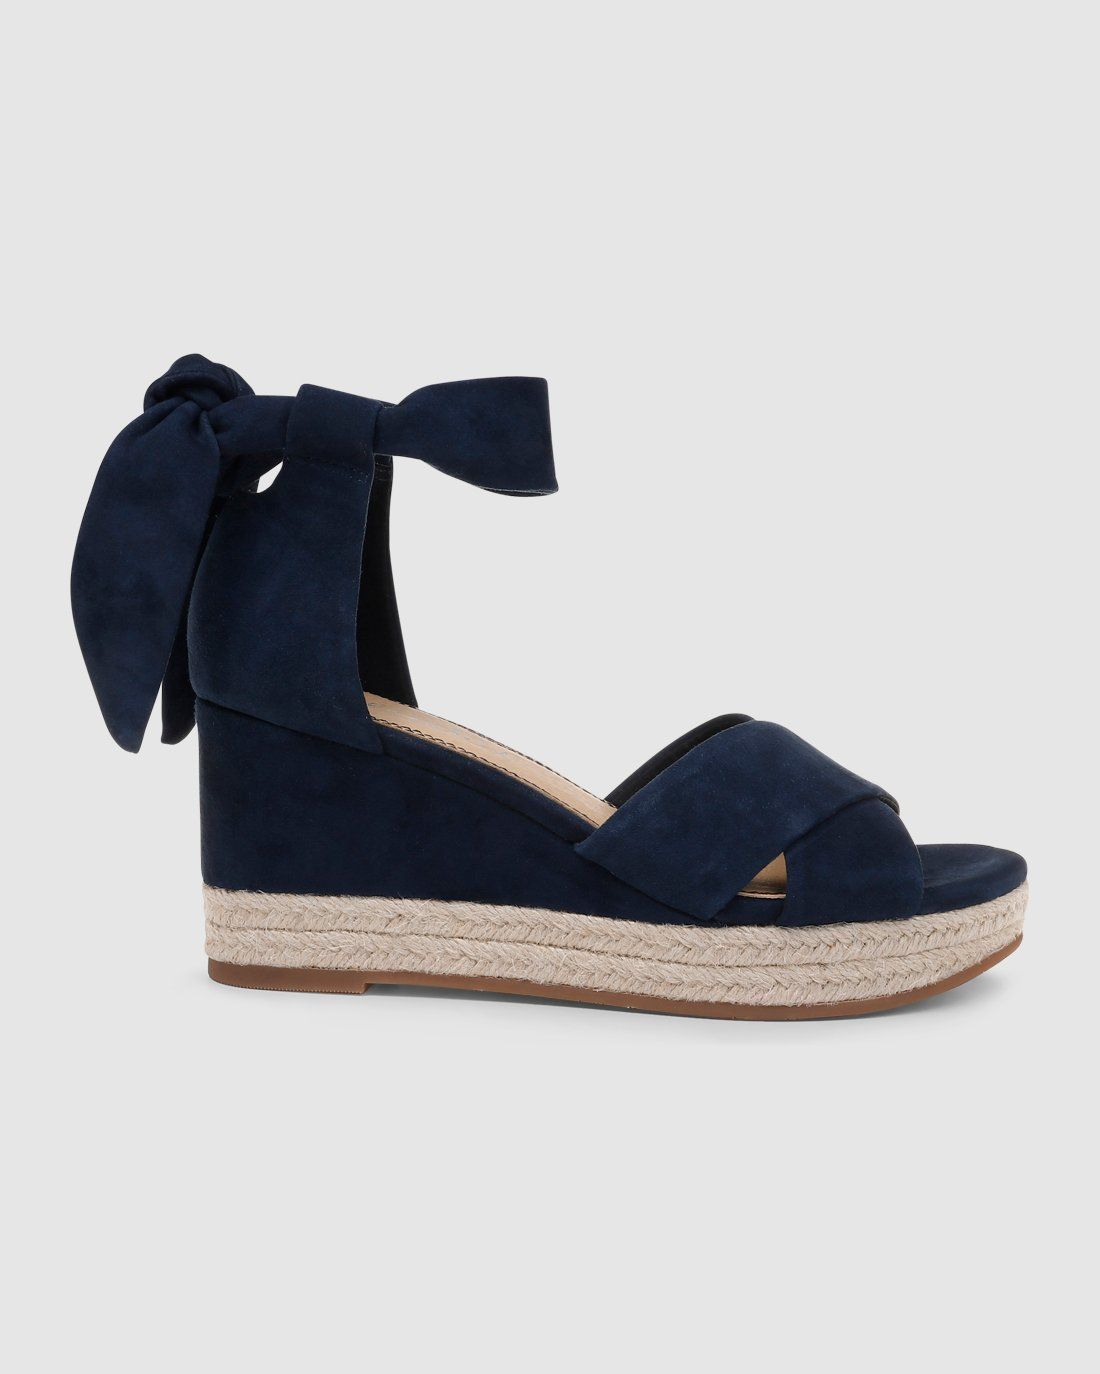 762b4337d Splendid espedrille style suede wedge sandal with ankle ties.